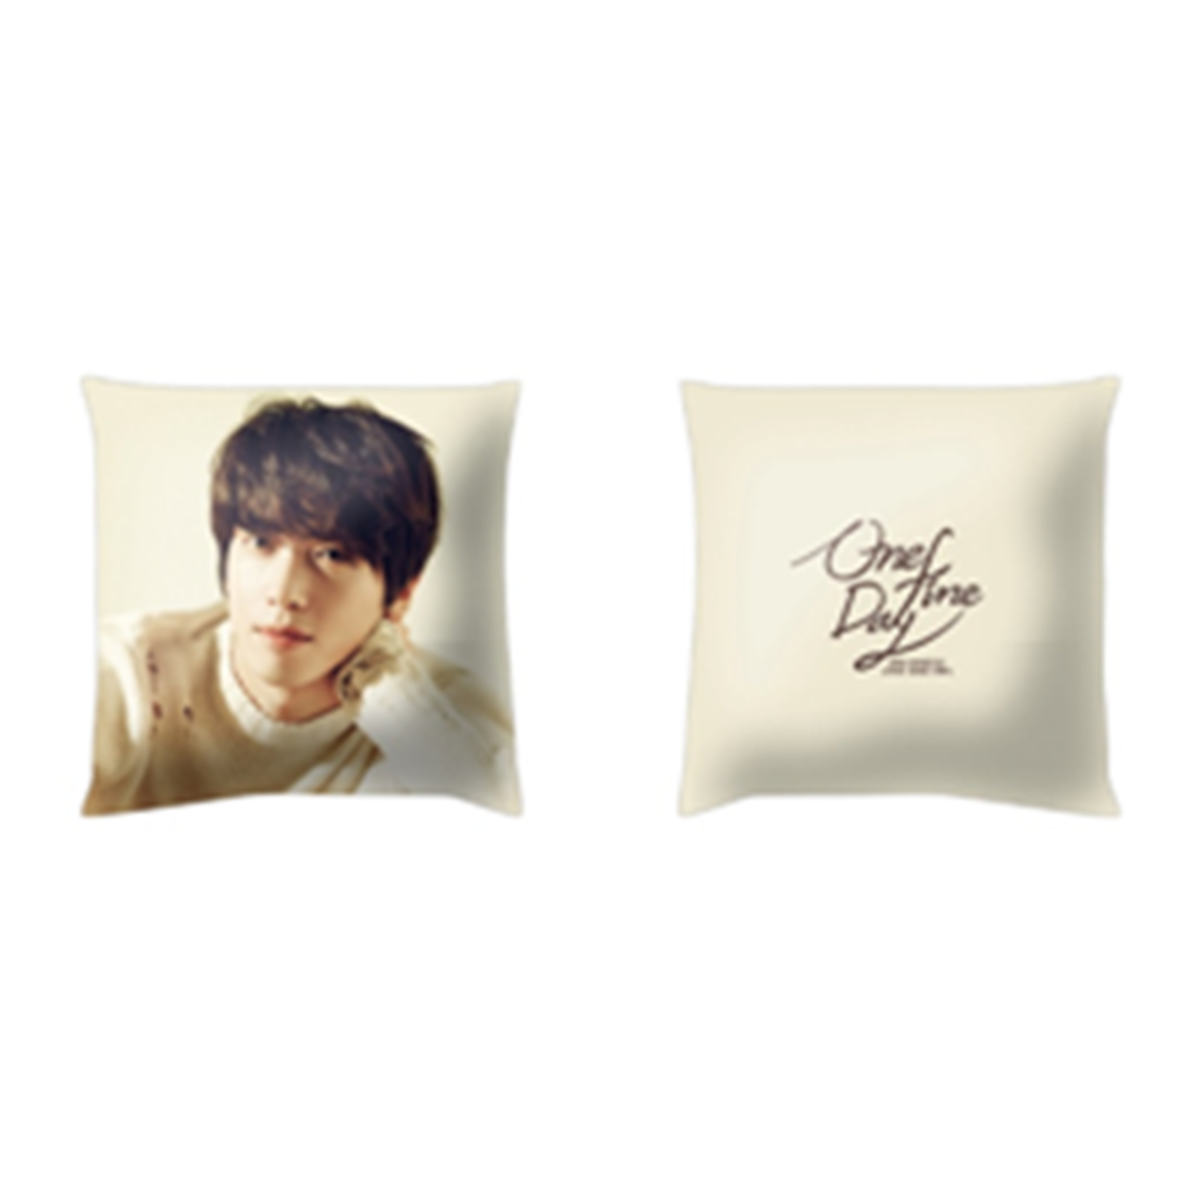 JUNG YONG HWA - ONE FINE DAY Cushion Cover [FNC Official MD Goods]_GD00018417_GD00018417